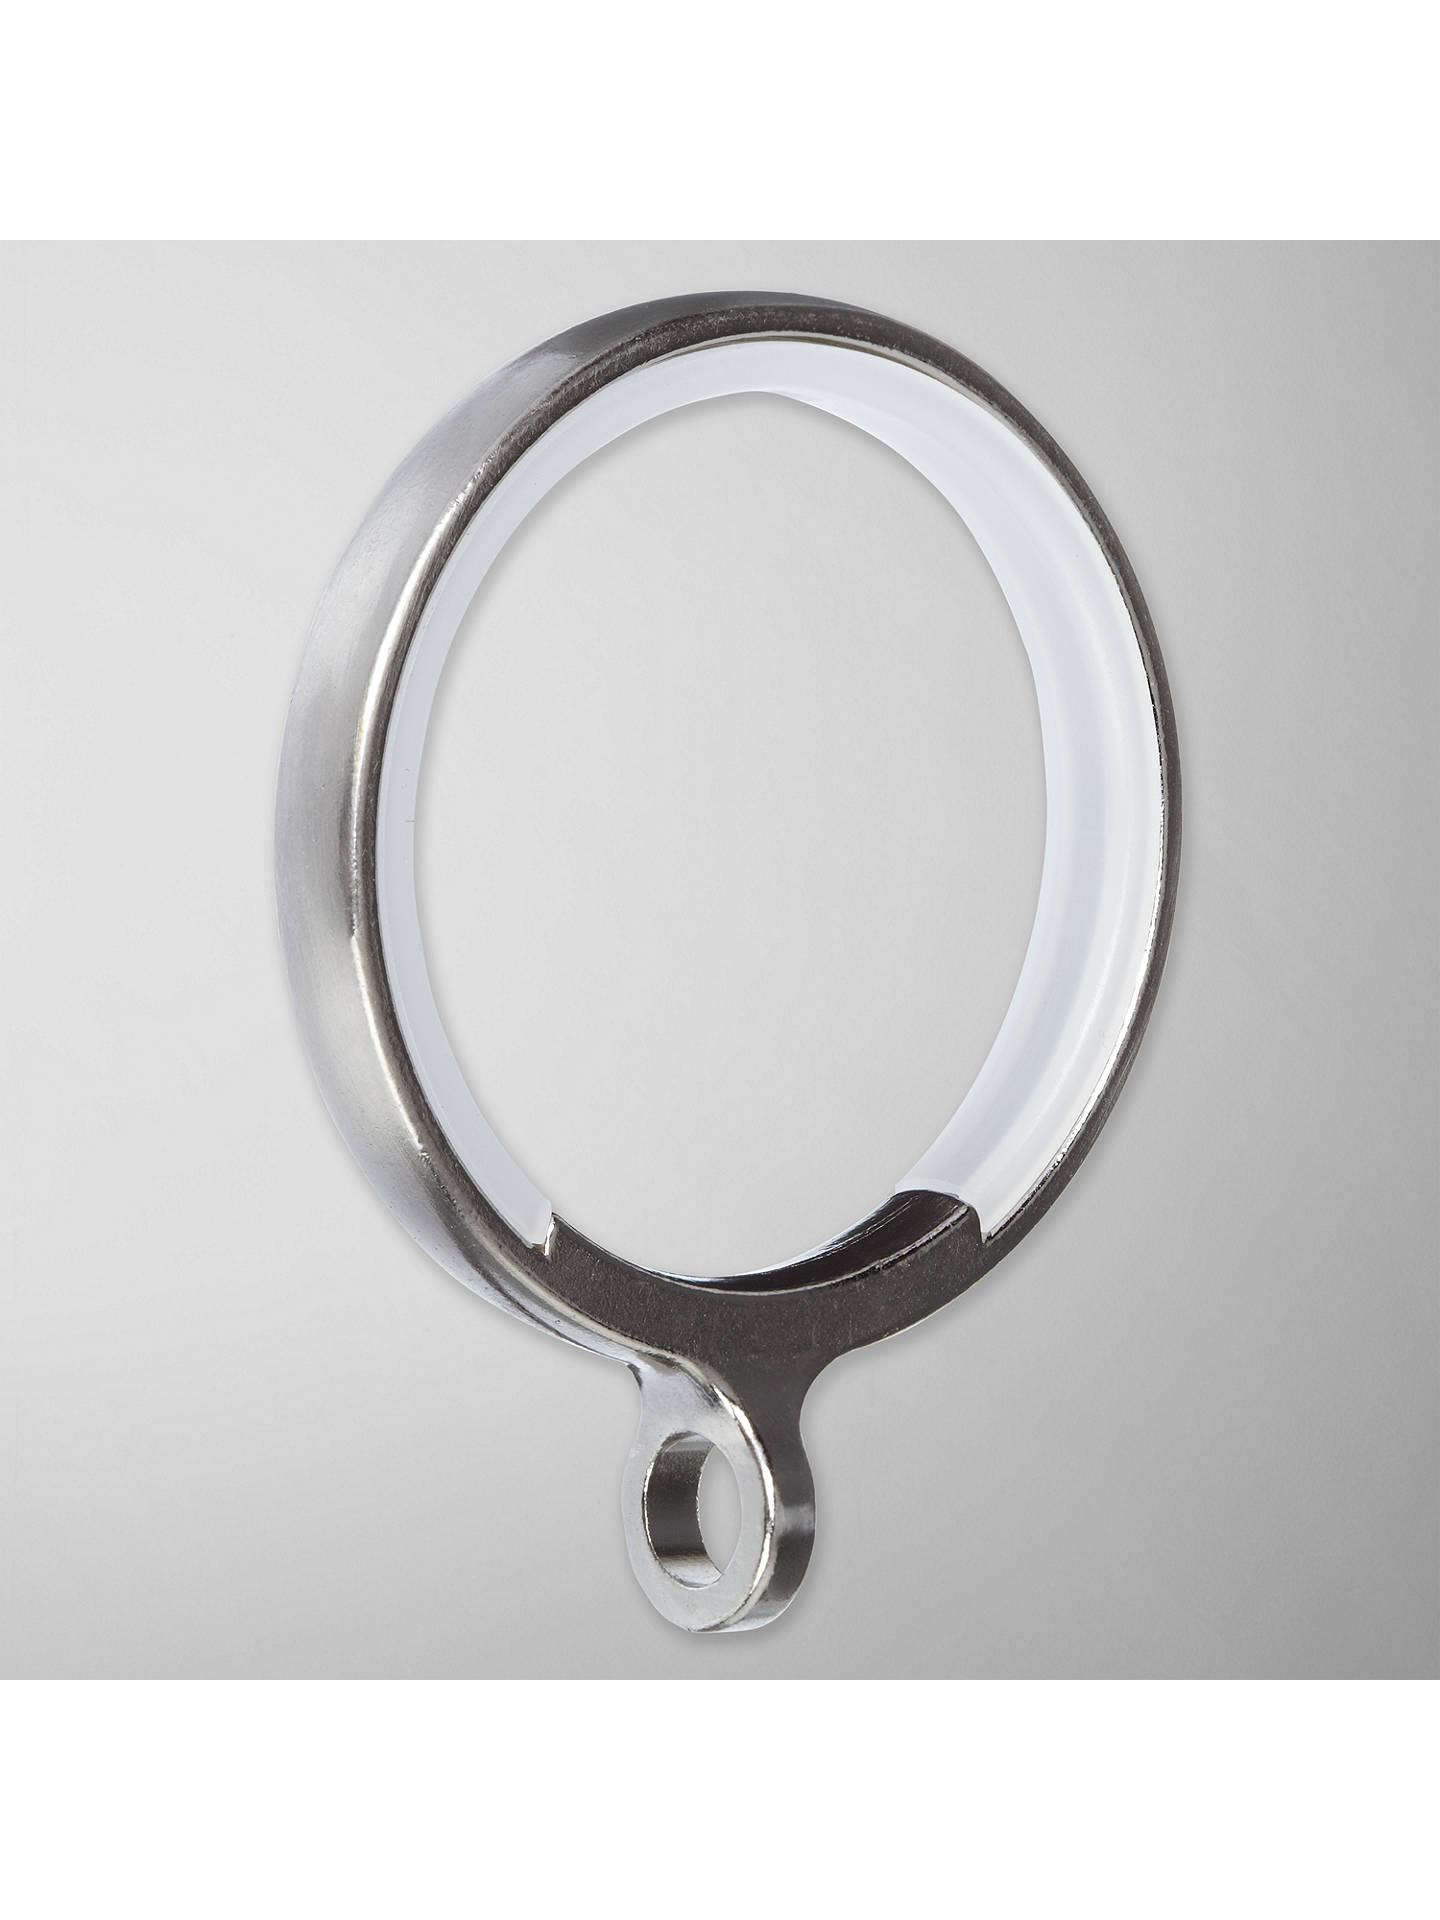 BuyJohn Lewis & Partners Steel Curtain Rings, Pack of 6, Dia.19mm Online at johnlewis.com